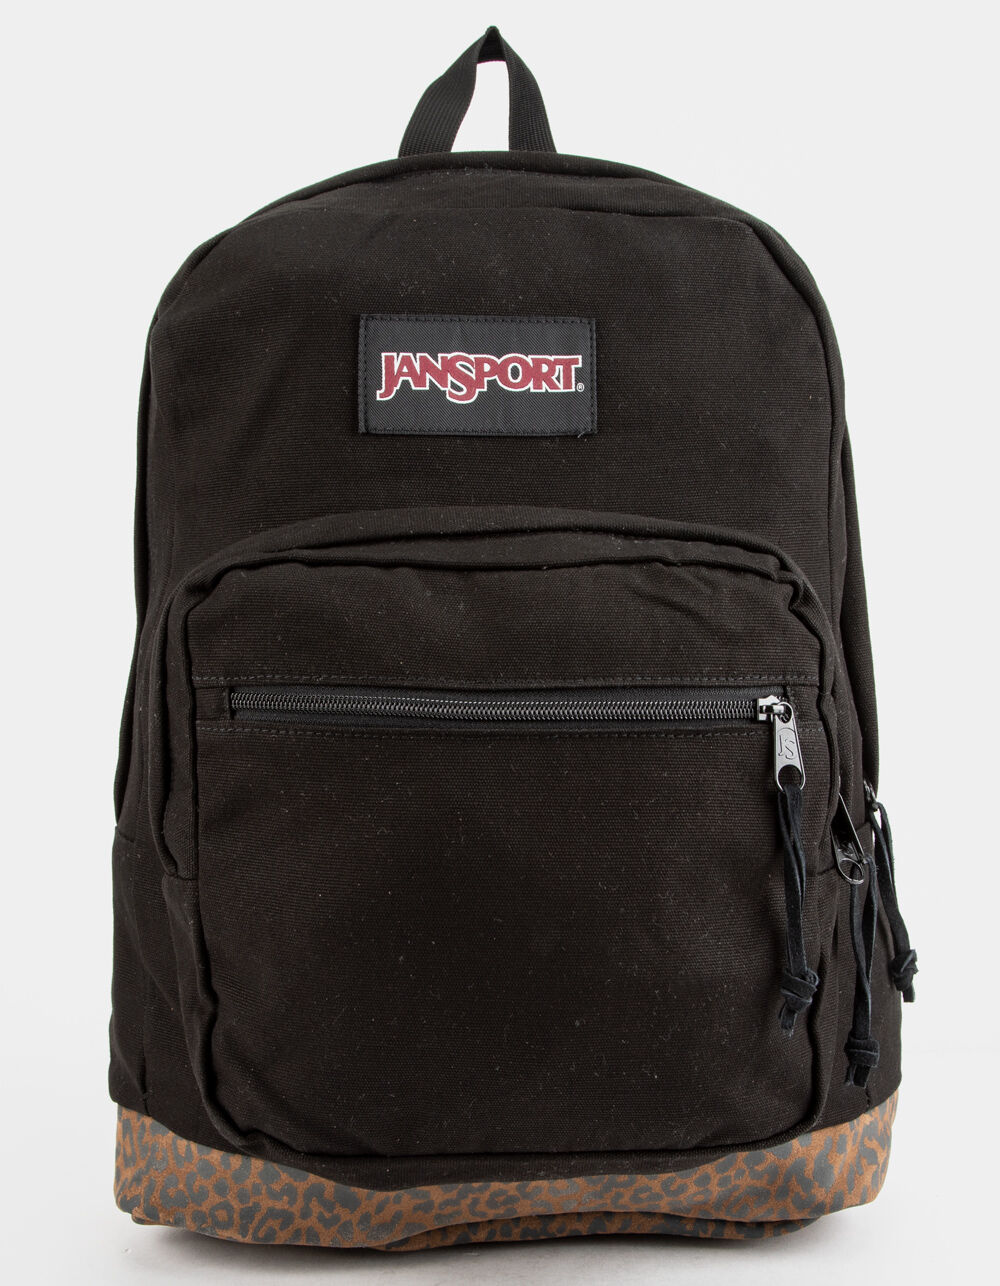 JANSPORT Right Pack Expressions Leopard Boot Backpack